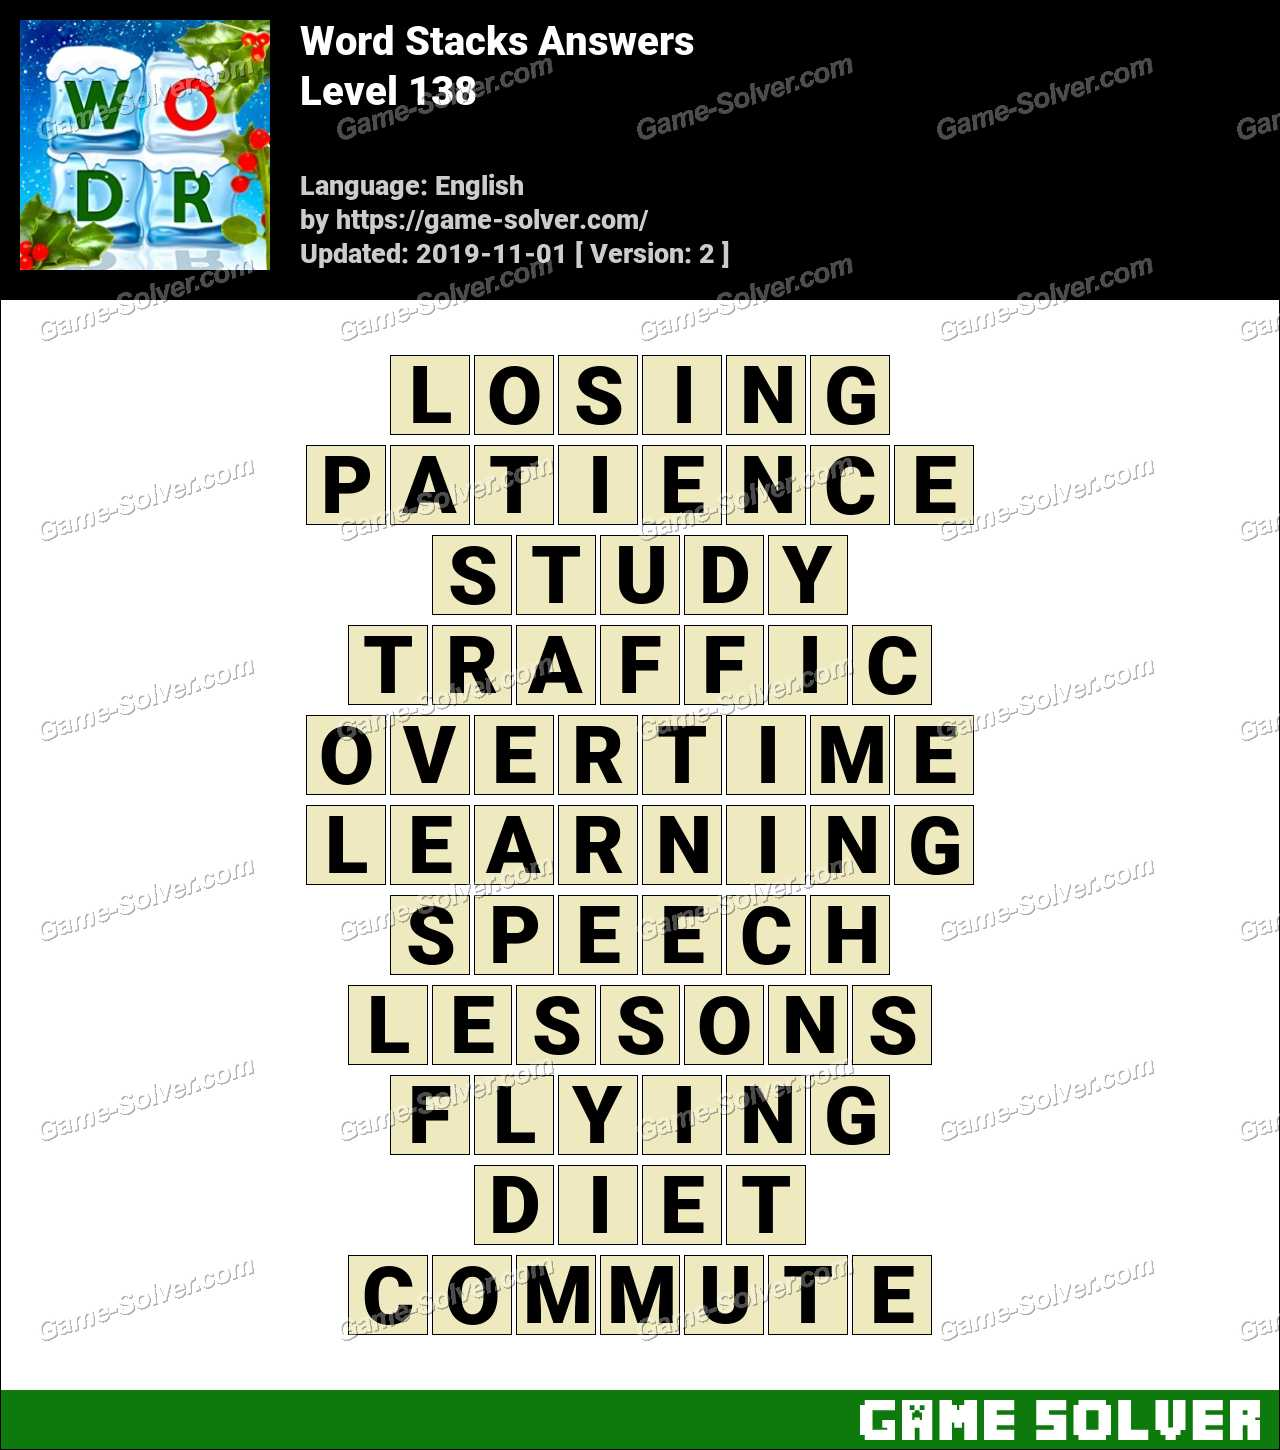 Word Stacks Level 138 Answers